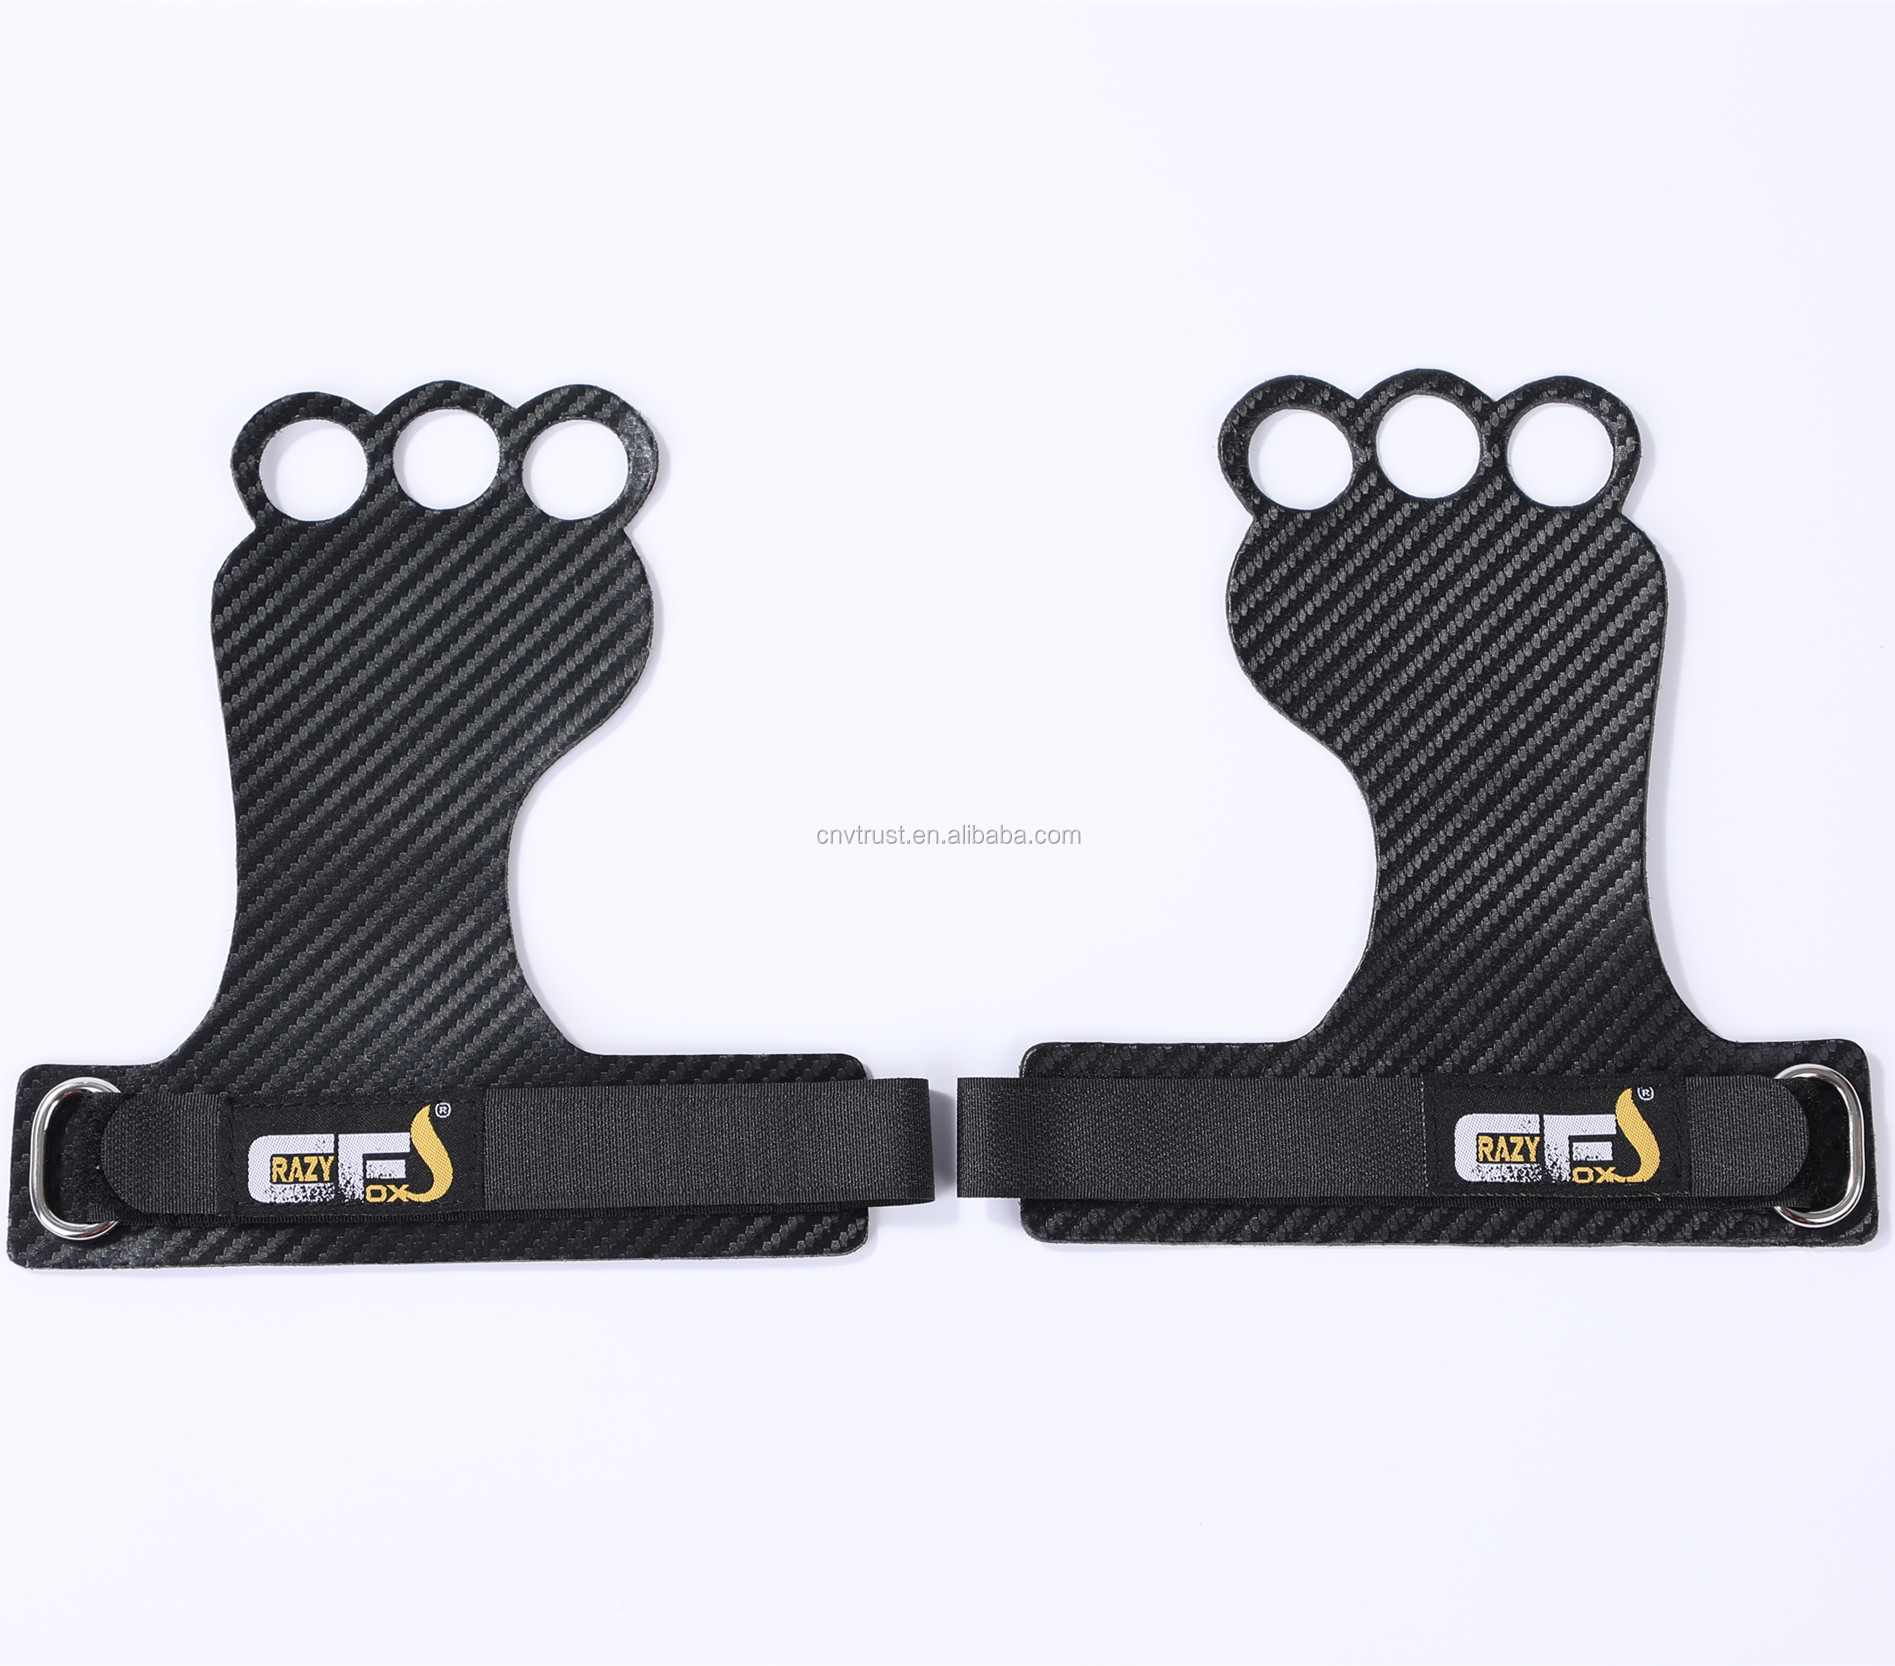 New designed Frog Shape 3-Hole Carbon Fiber Grips for Pull ups, Weight Lifting, Chin Ups, Training, Exercise, Kettlebell